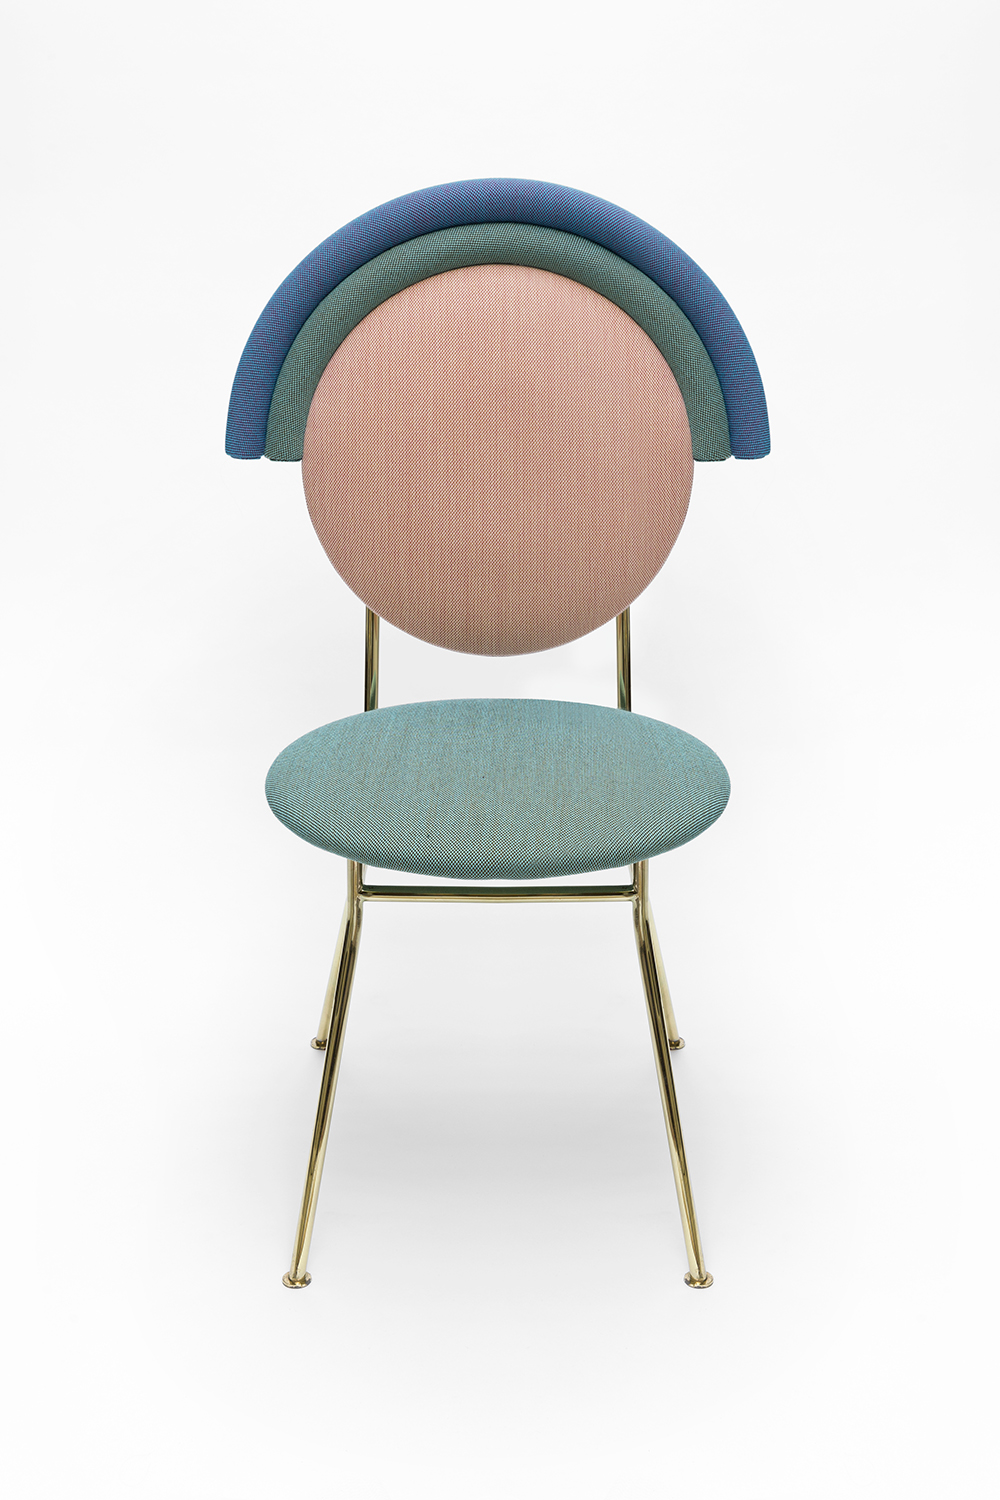 merve+kahraman+products+interiors+iris+chair+front